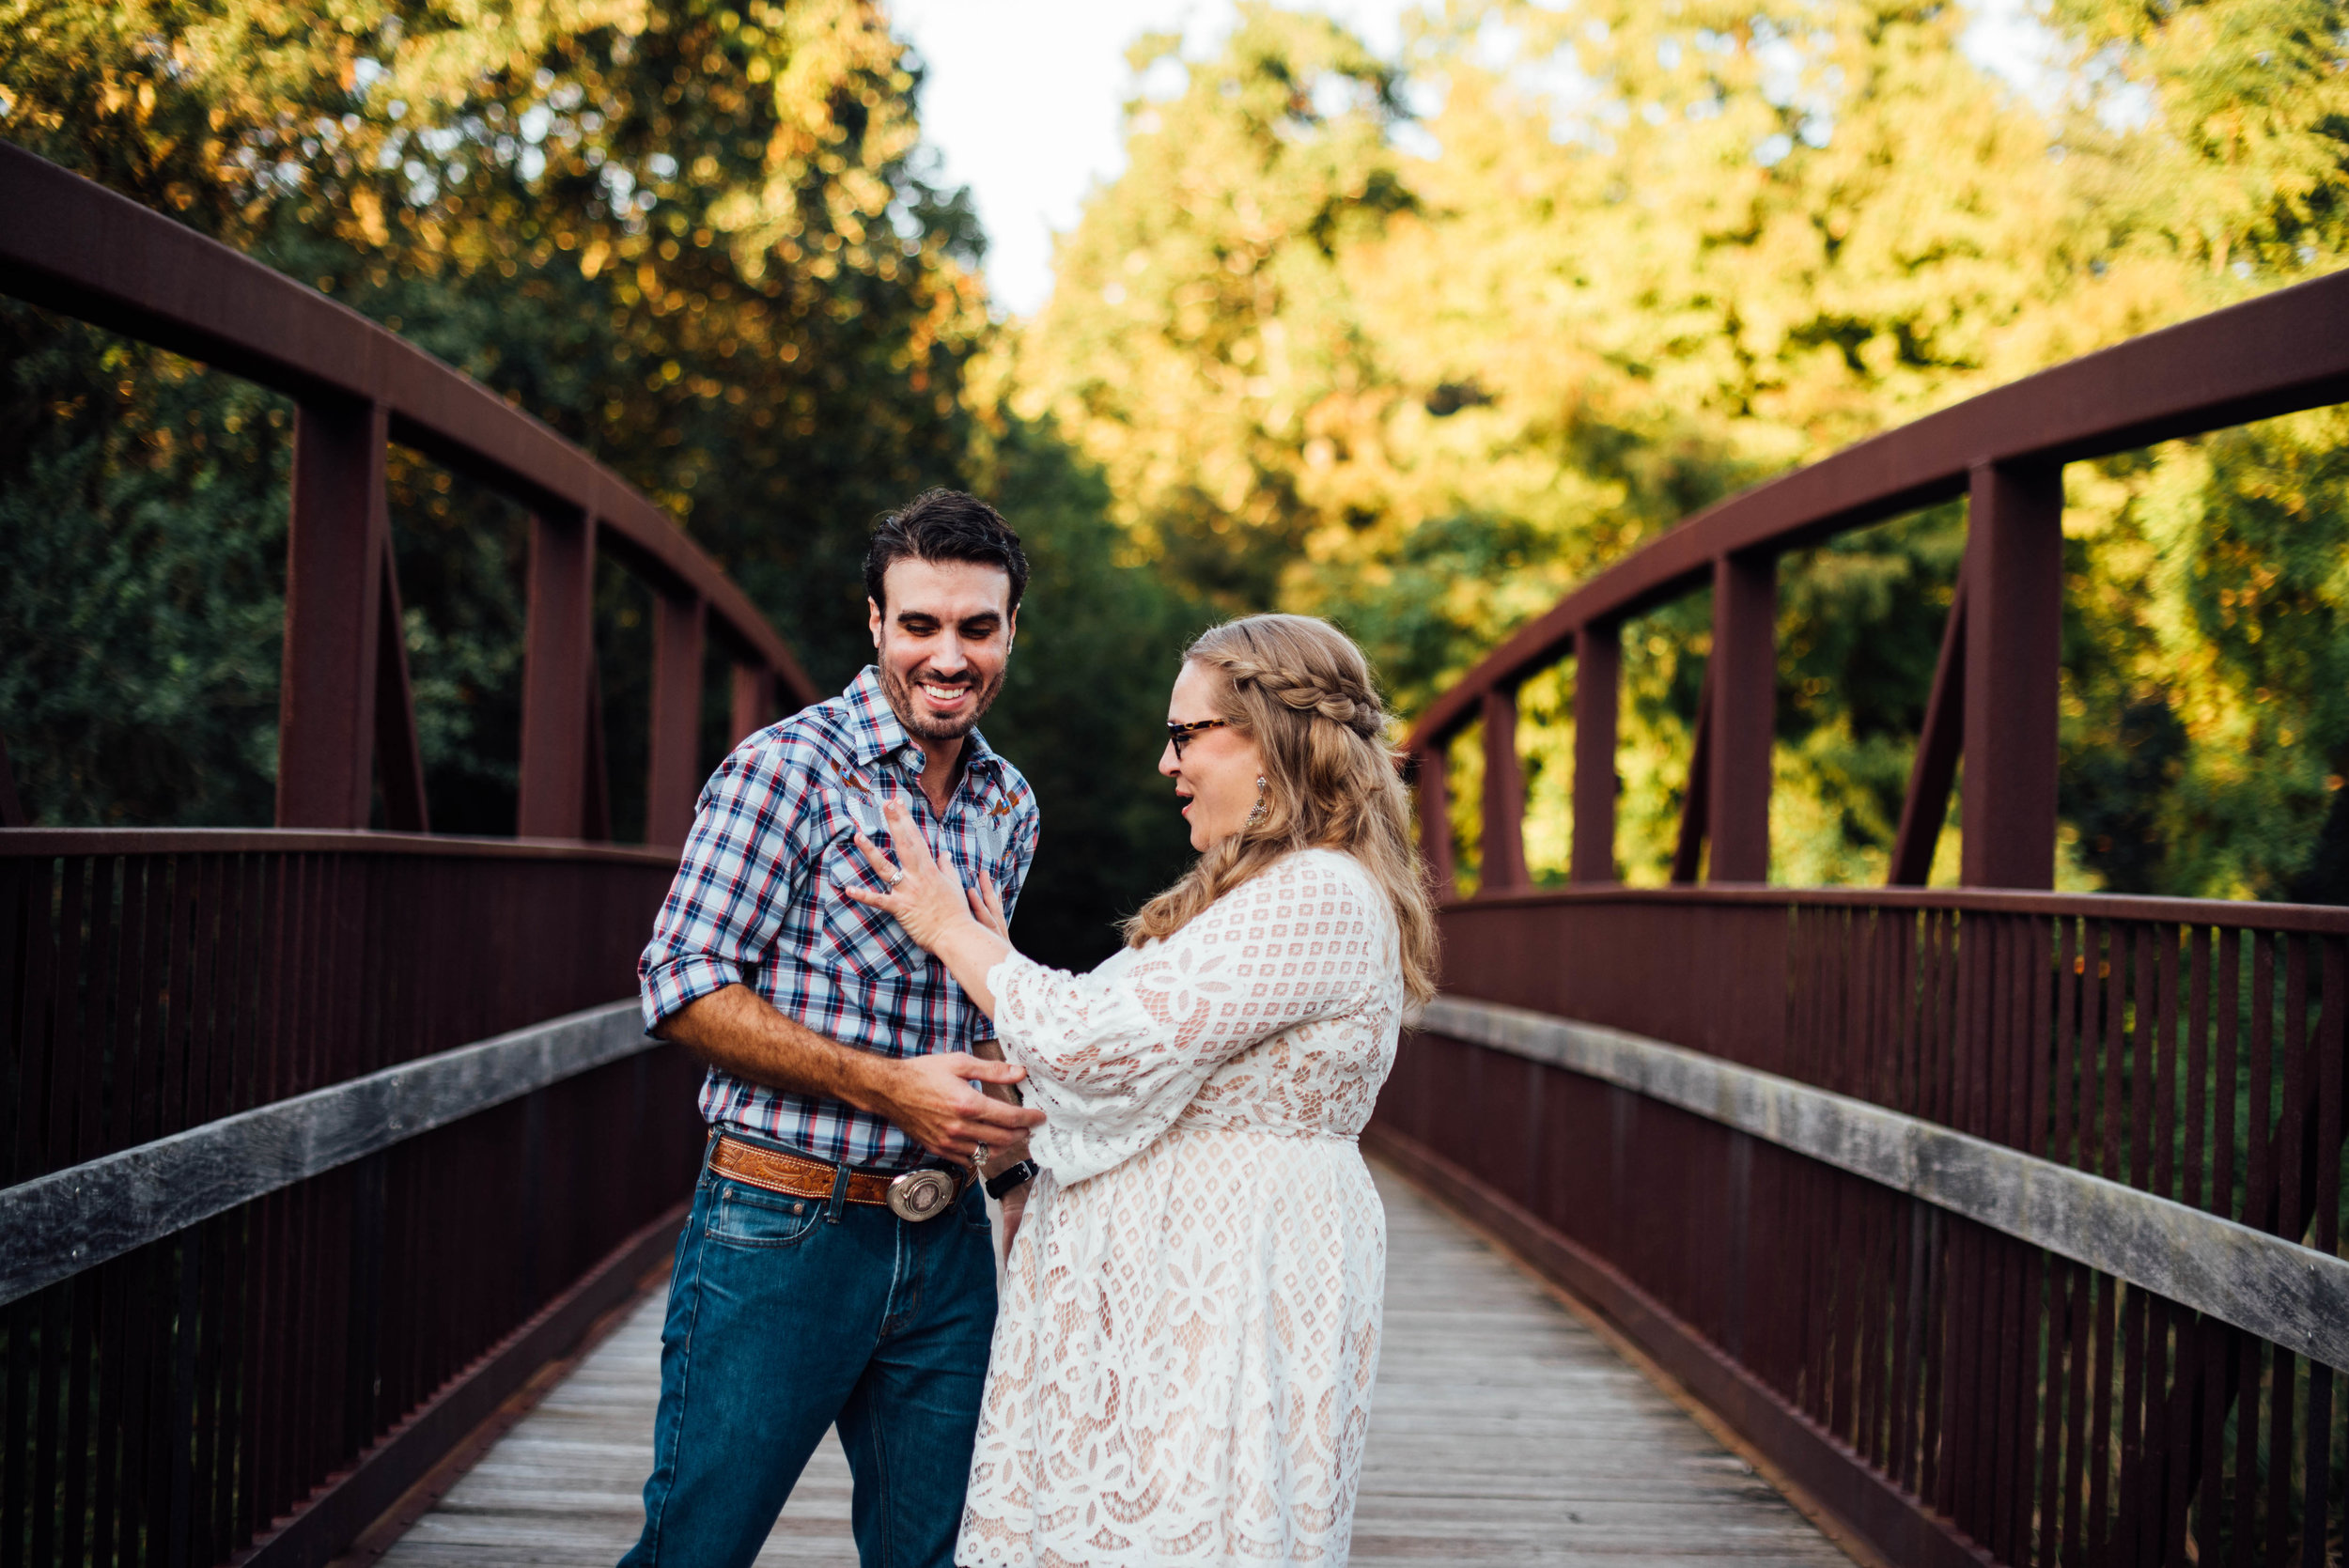 Jordan + Kent_French-Quarter-New-Orleans-City-Park-Engagement-Photos_Gabby Chapin_Print_0141.jpg